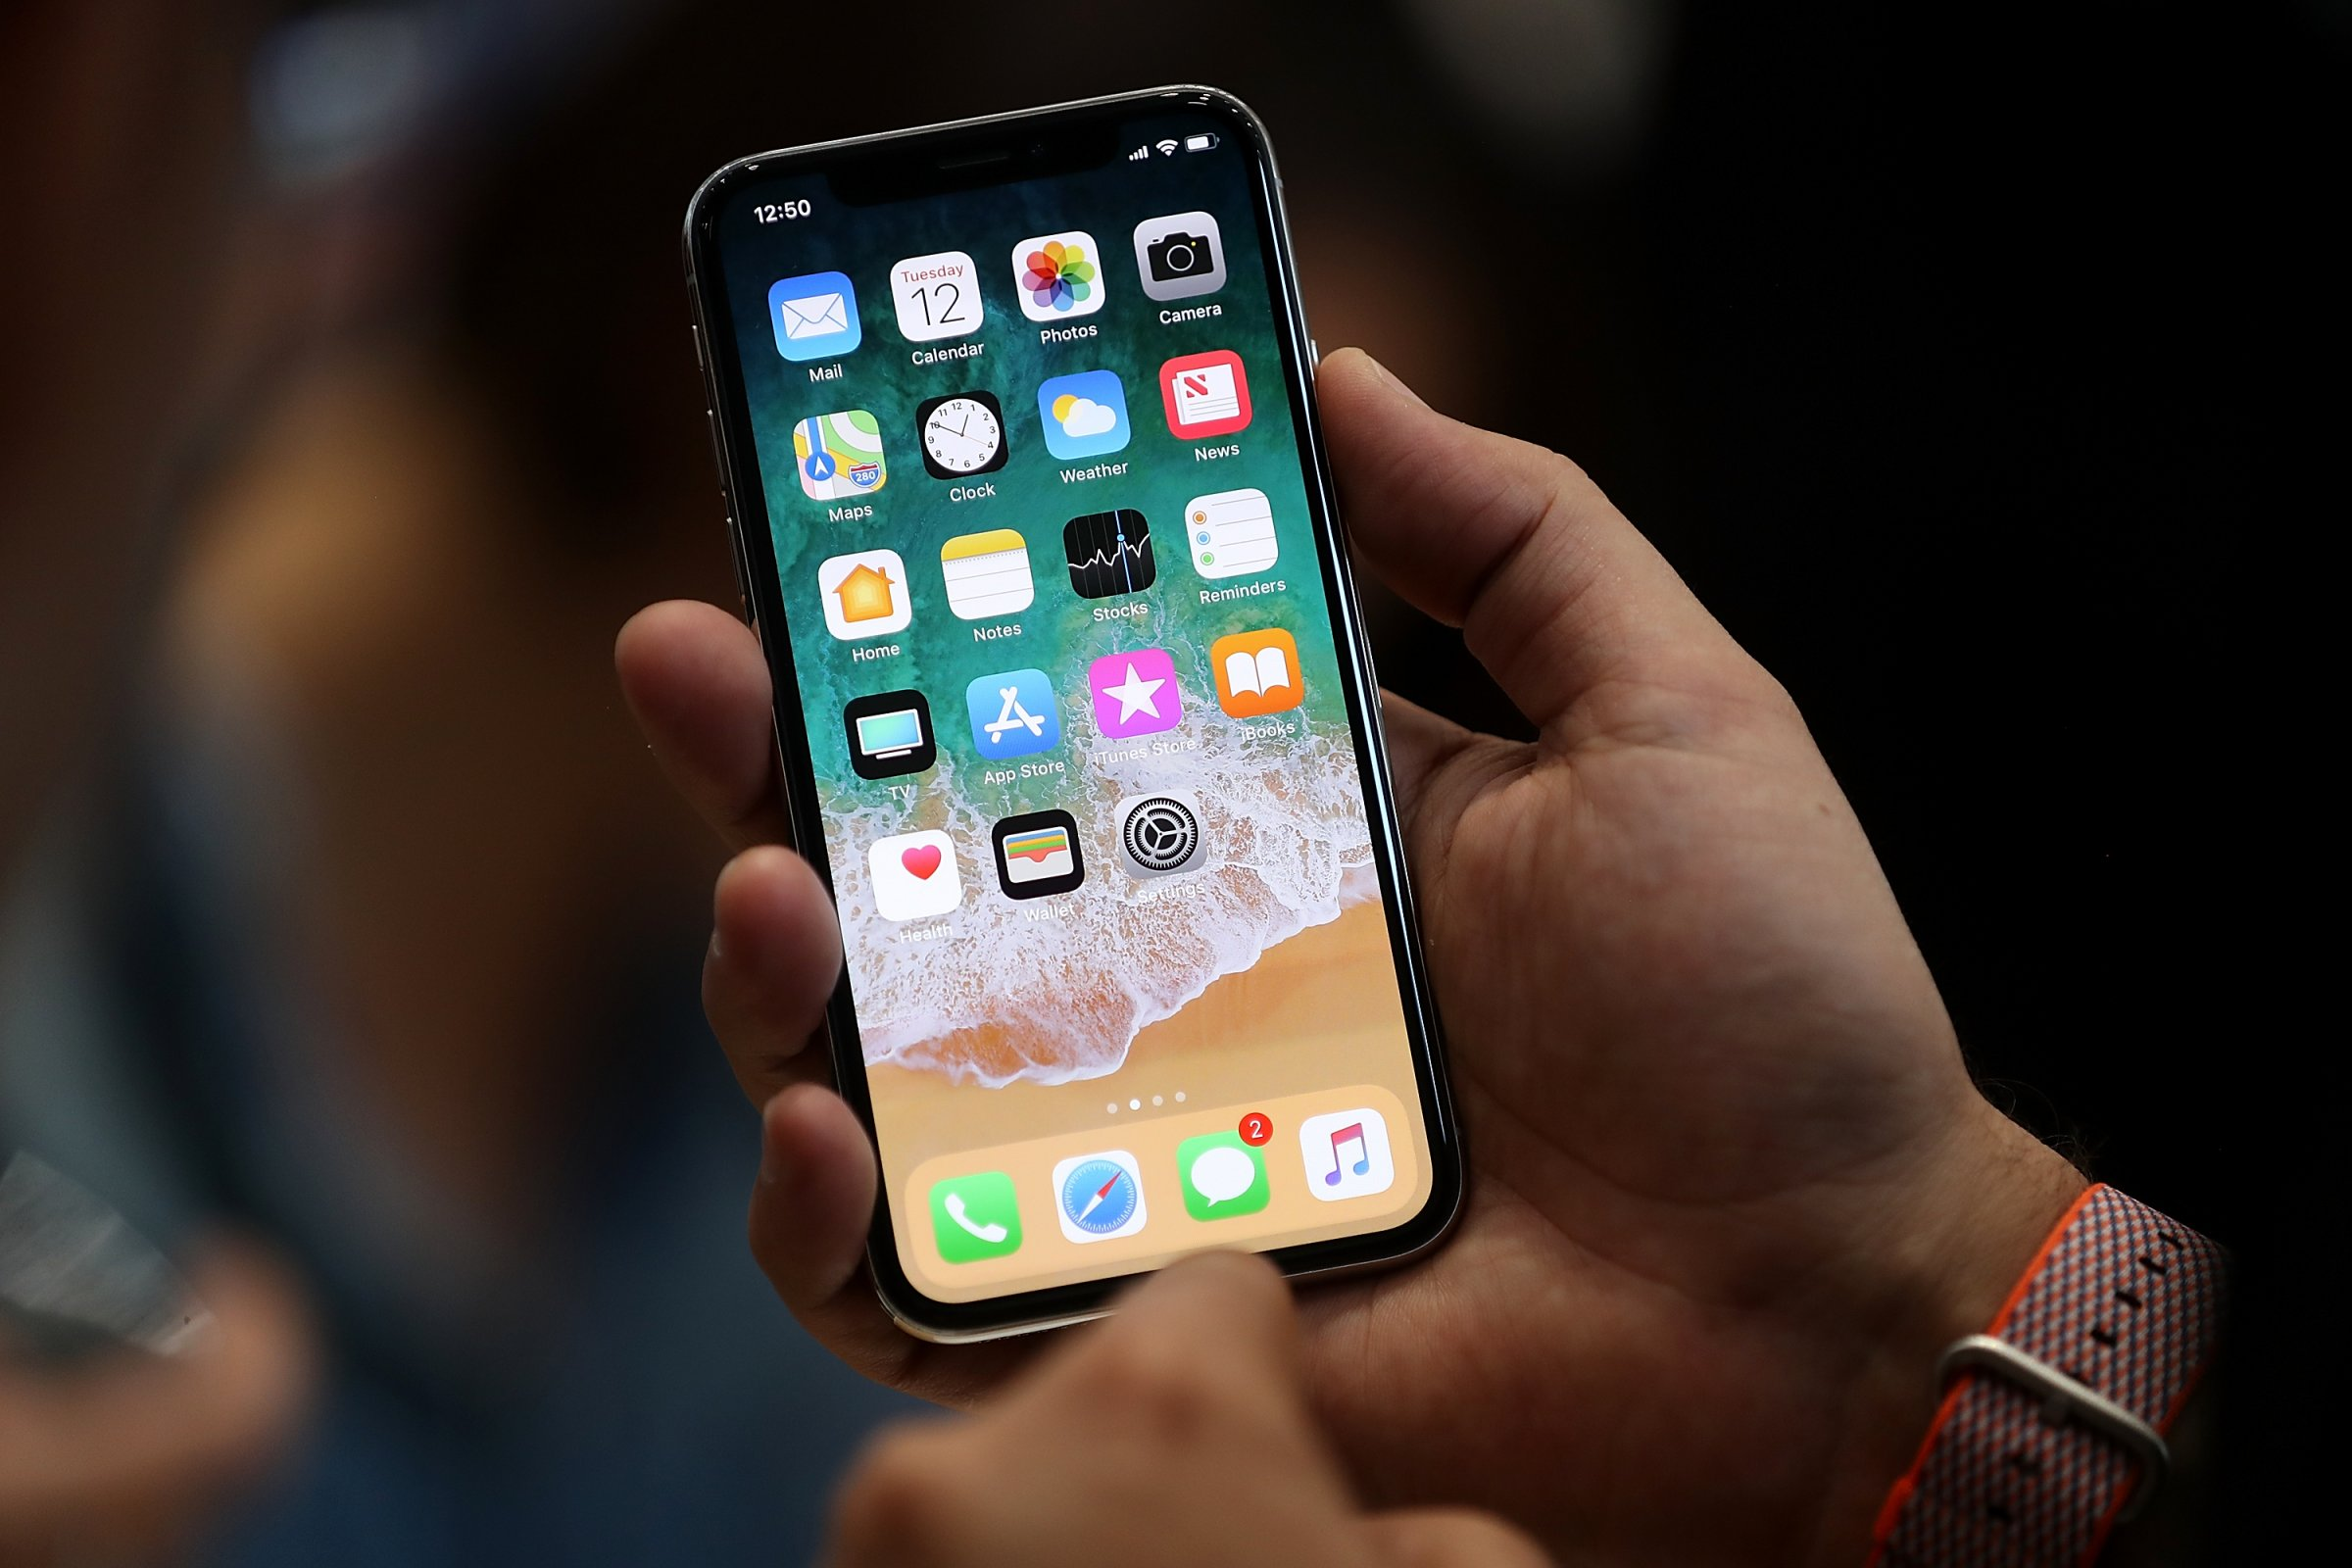 Apple iPhone X screen repair costs $110 more than iPhone 8 Plus' screen repair